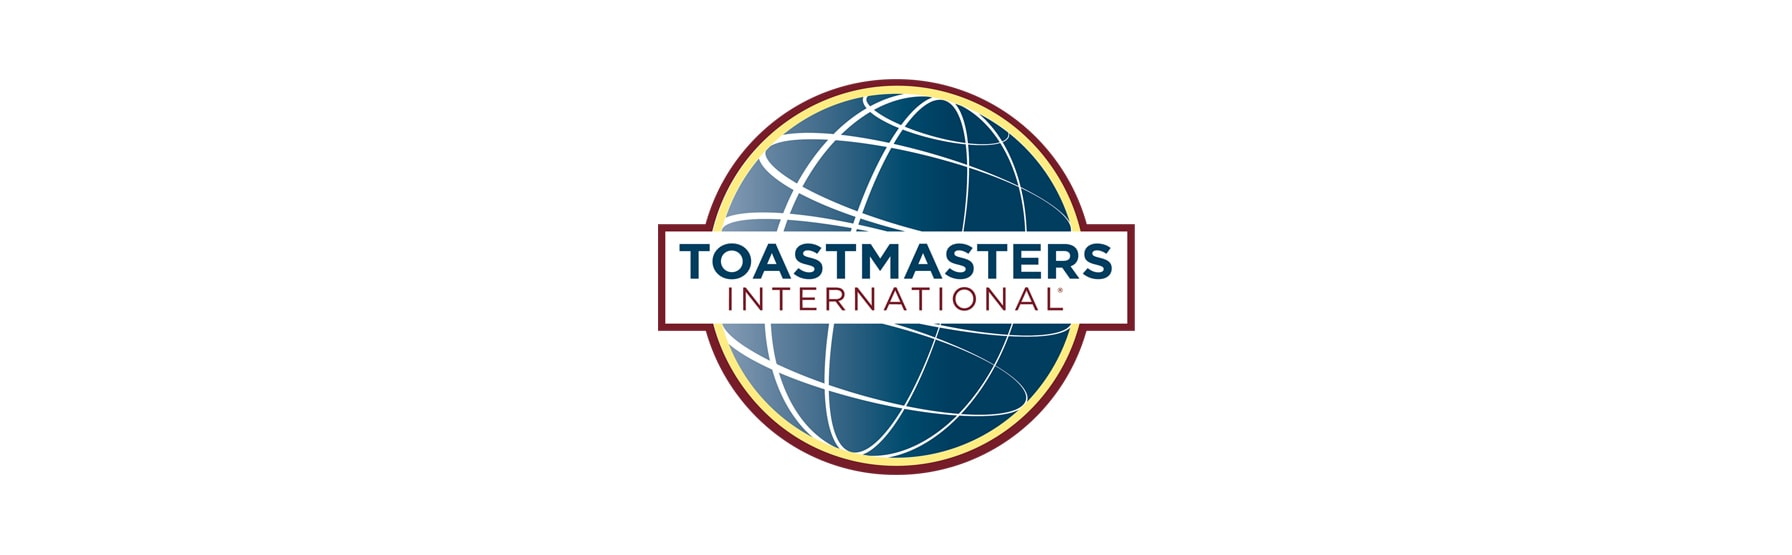 Toastmasters Exemplary Meeting